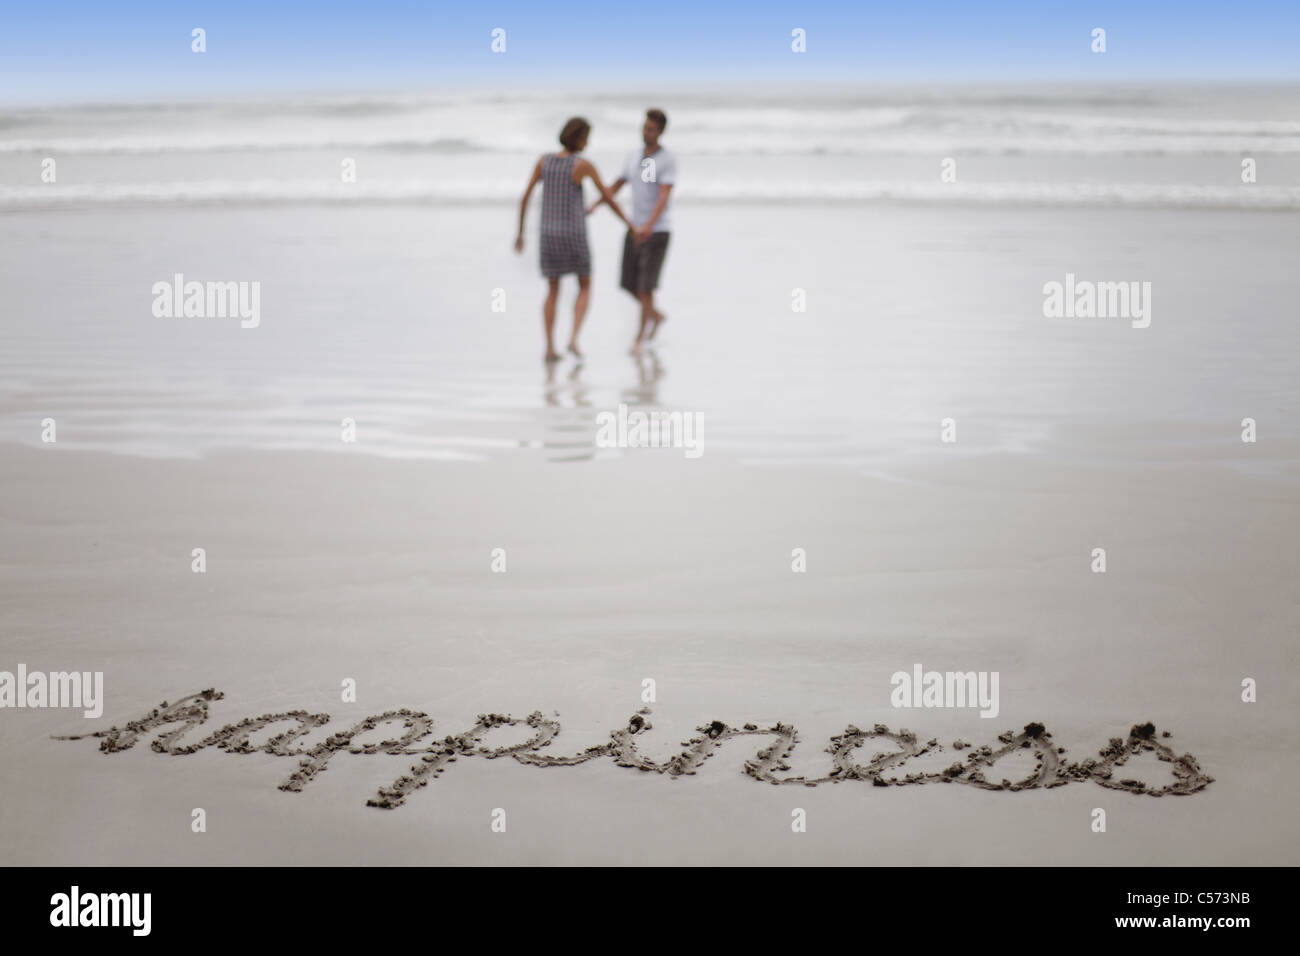 'Happiness' in sand with couple on beach - Stock Image